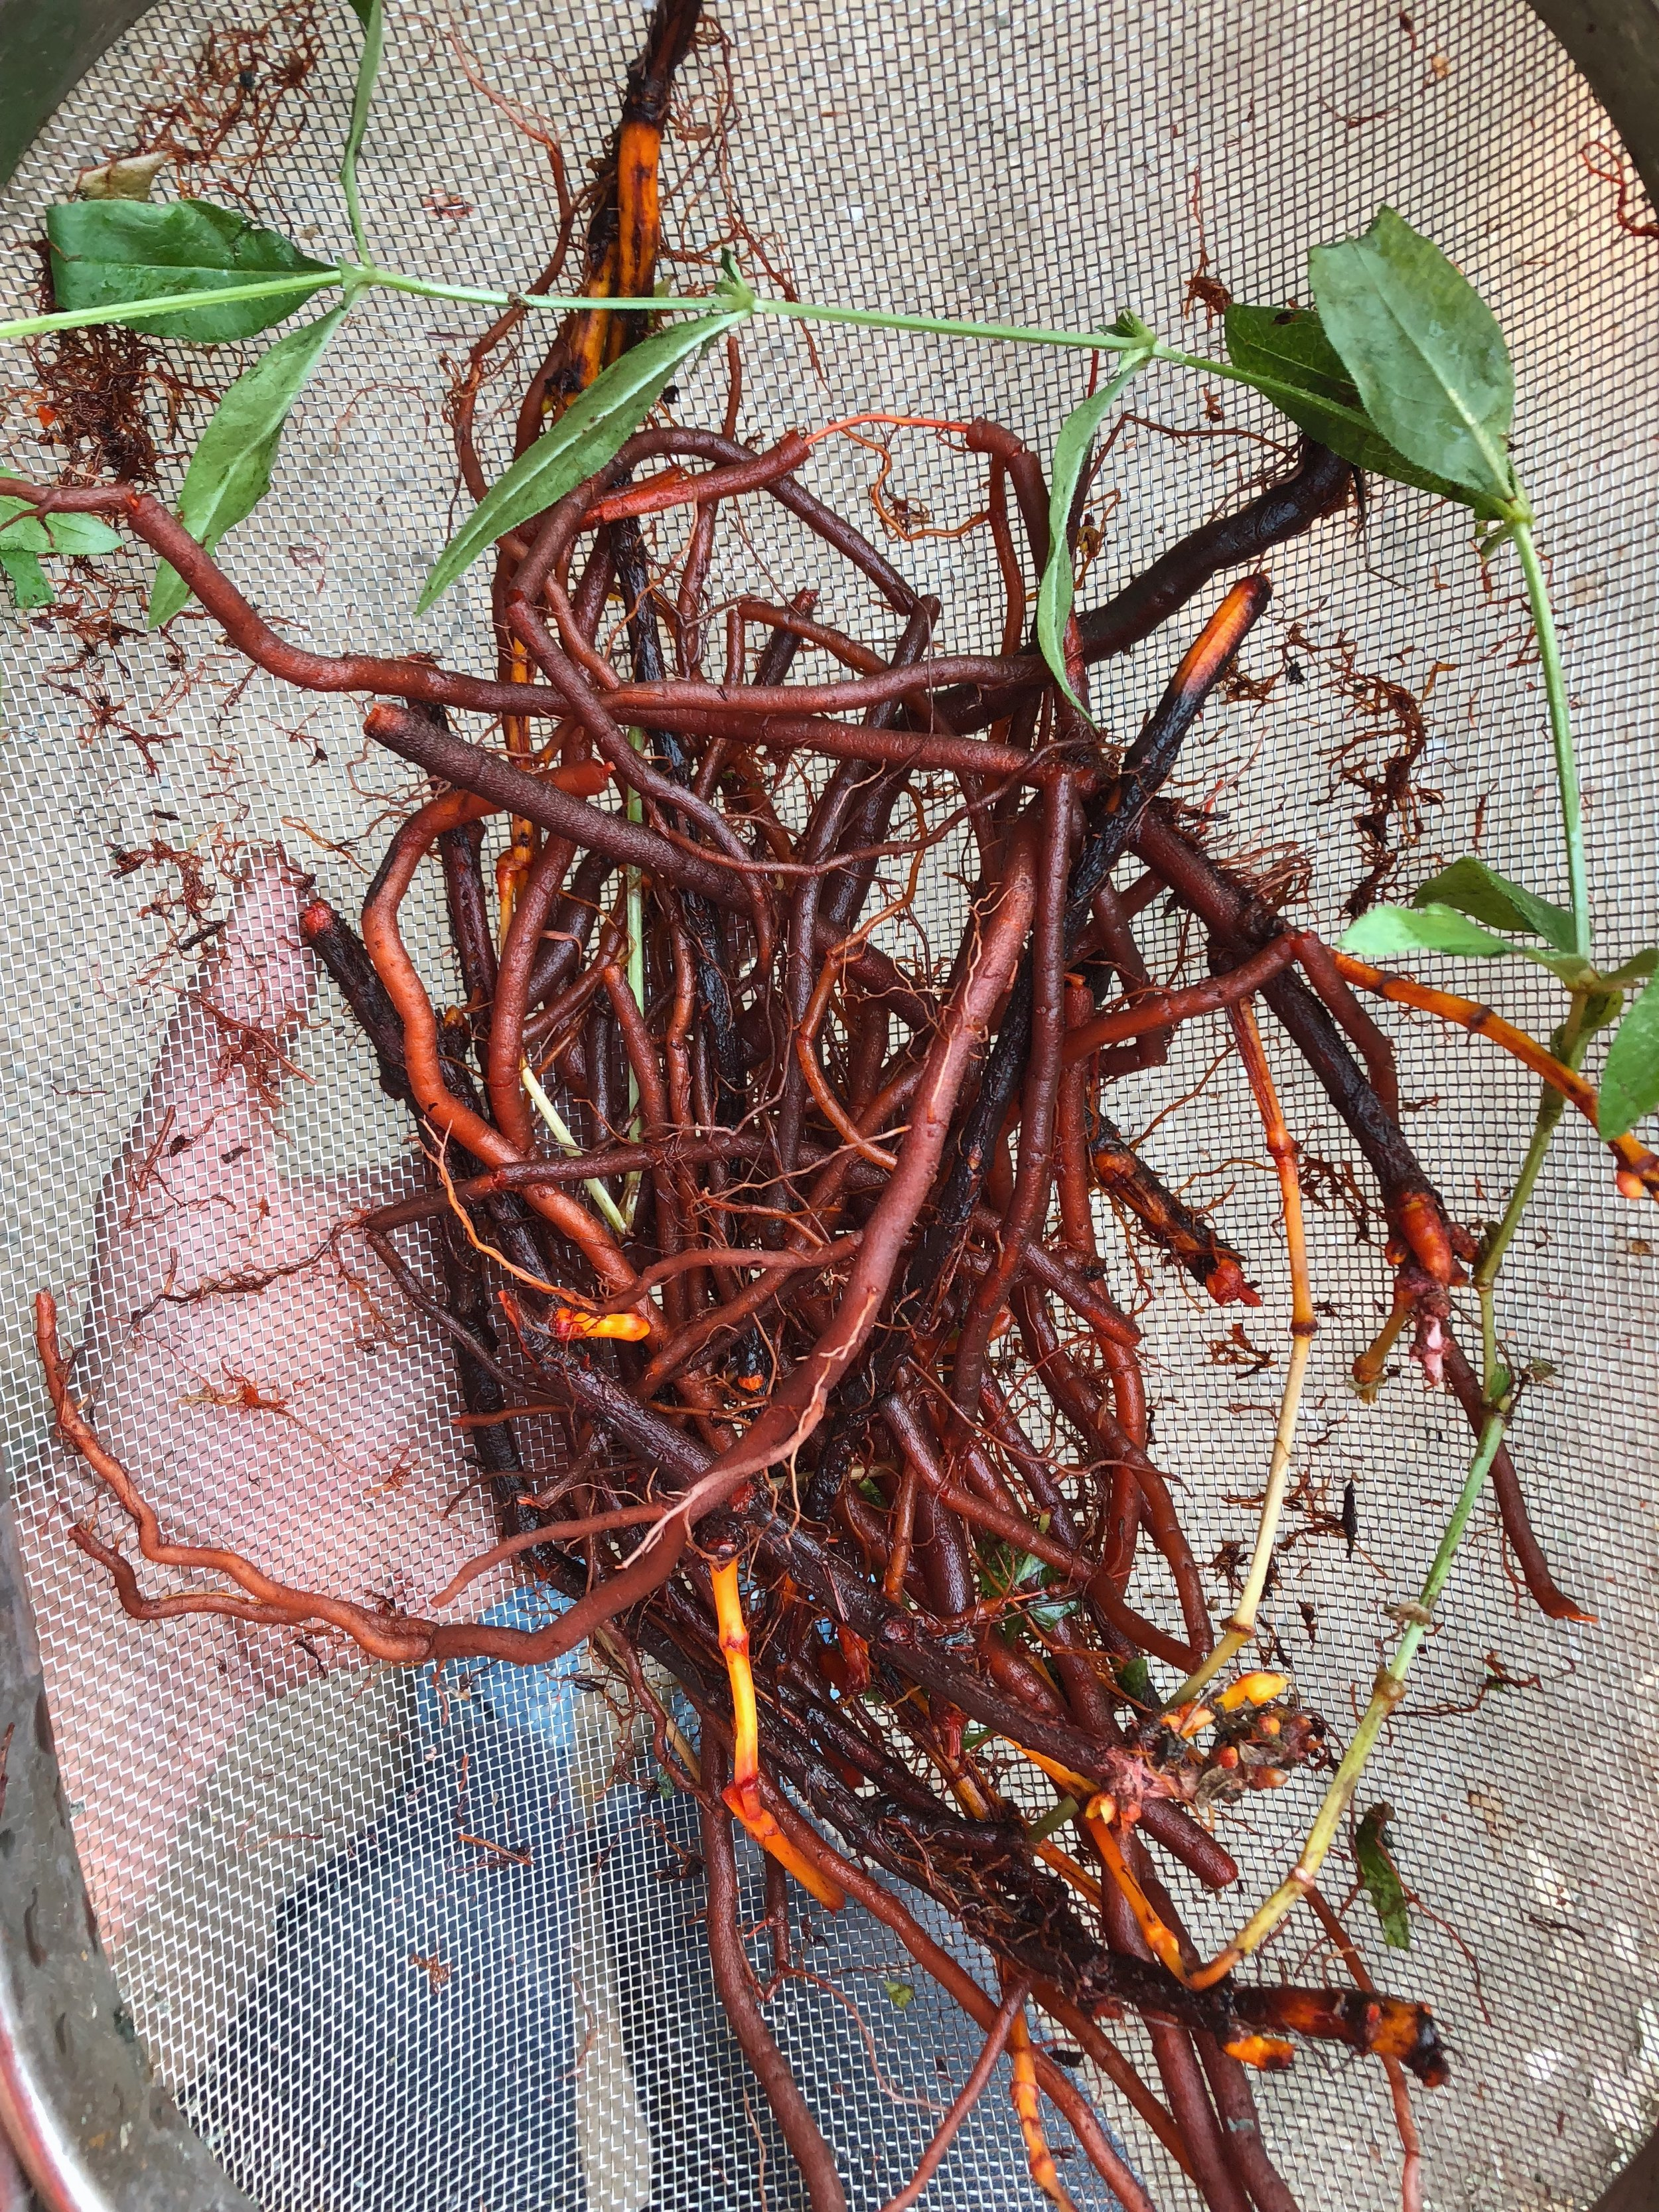 Madder root freshly dug up from the ground & rinsed